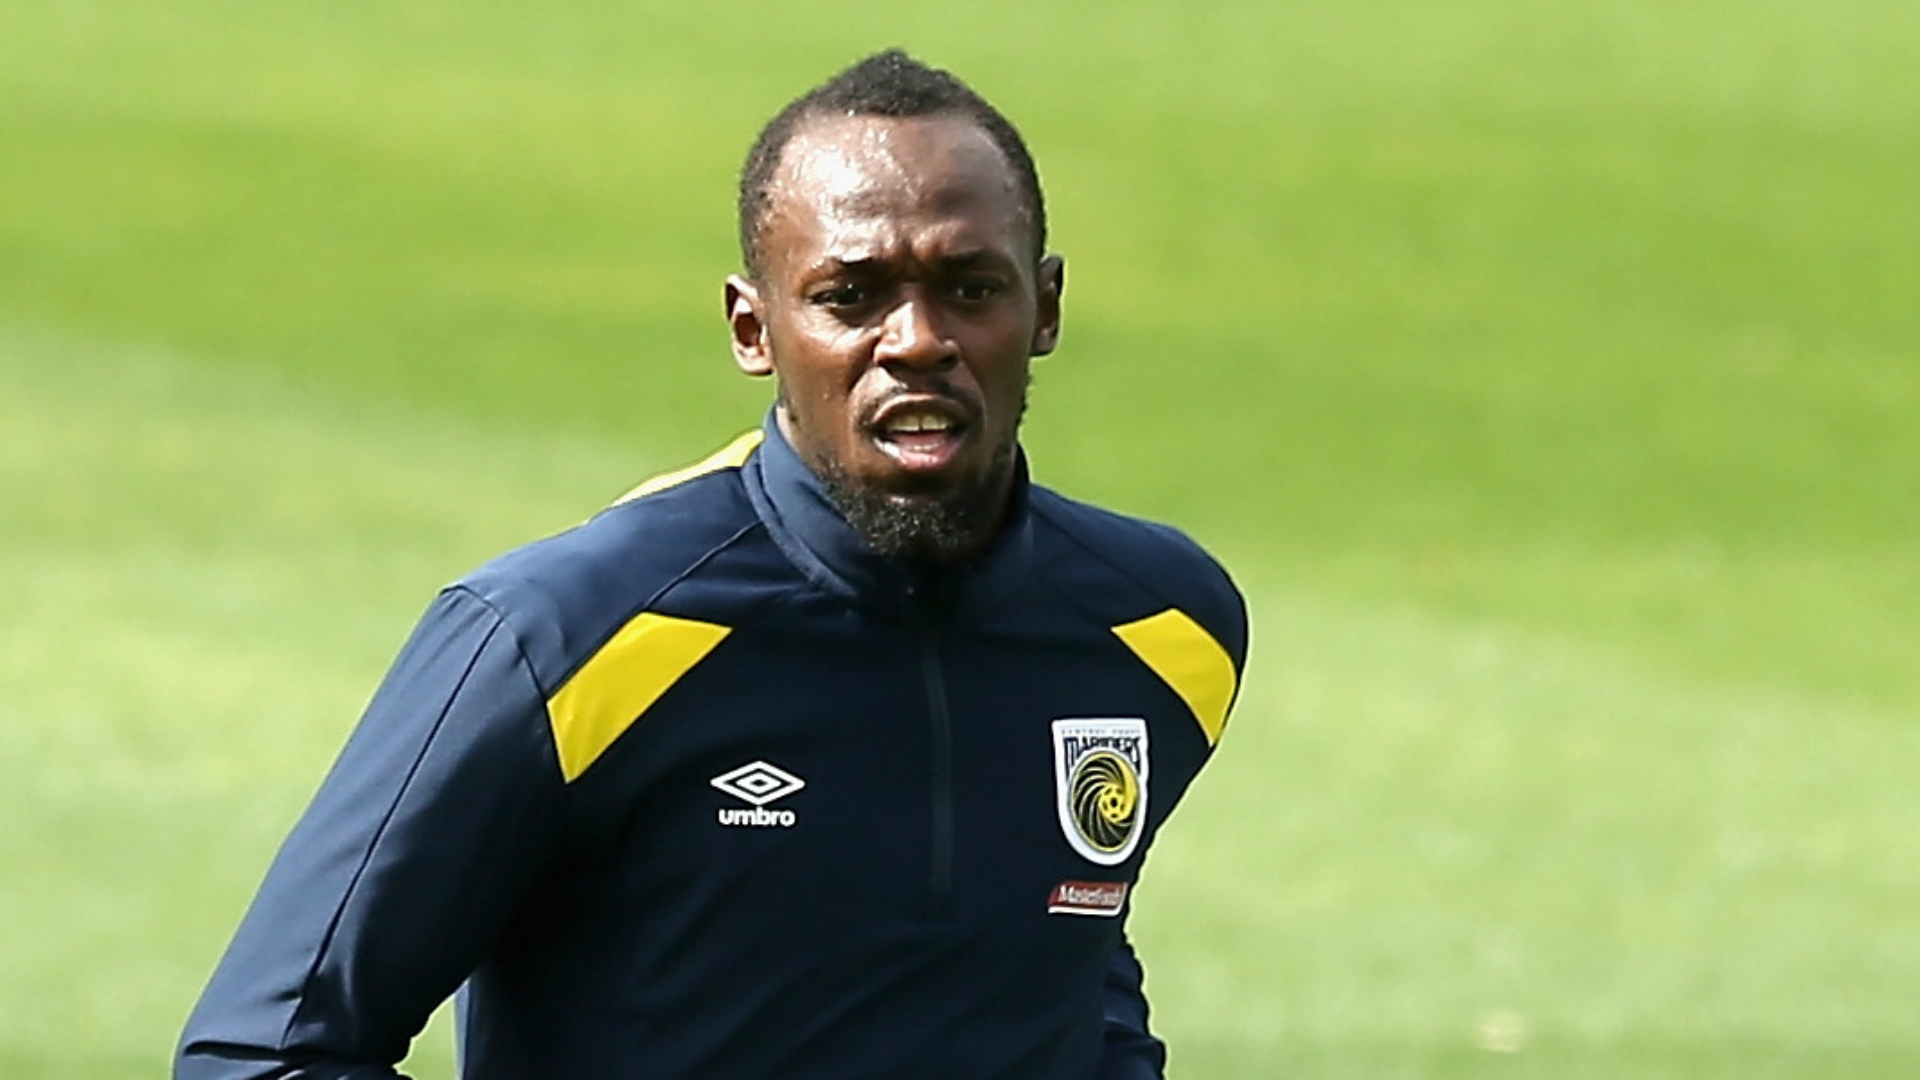 Usain Bolt poised to make professional football debut